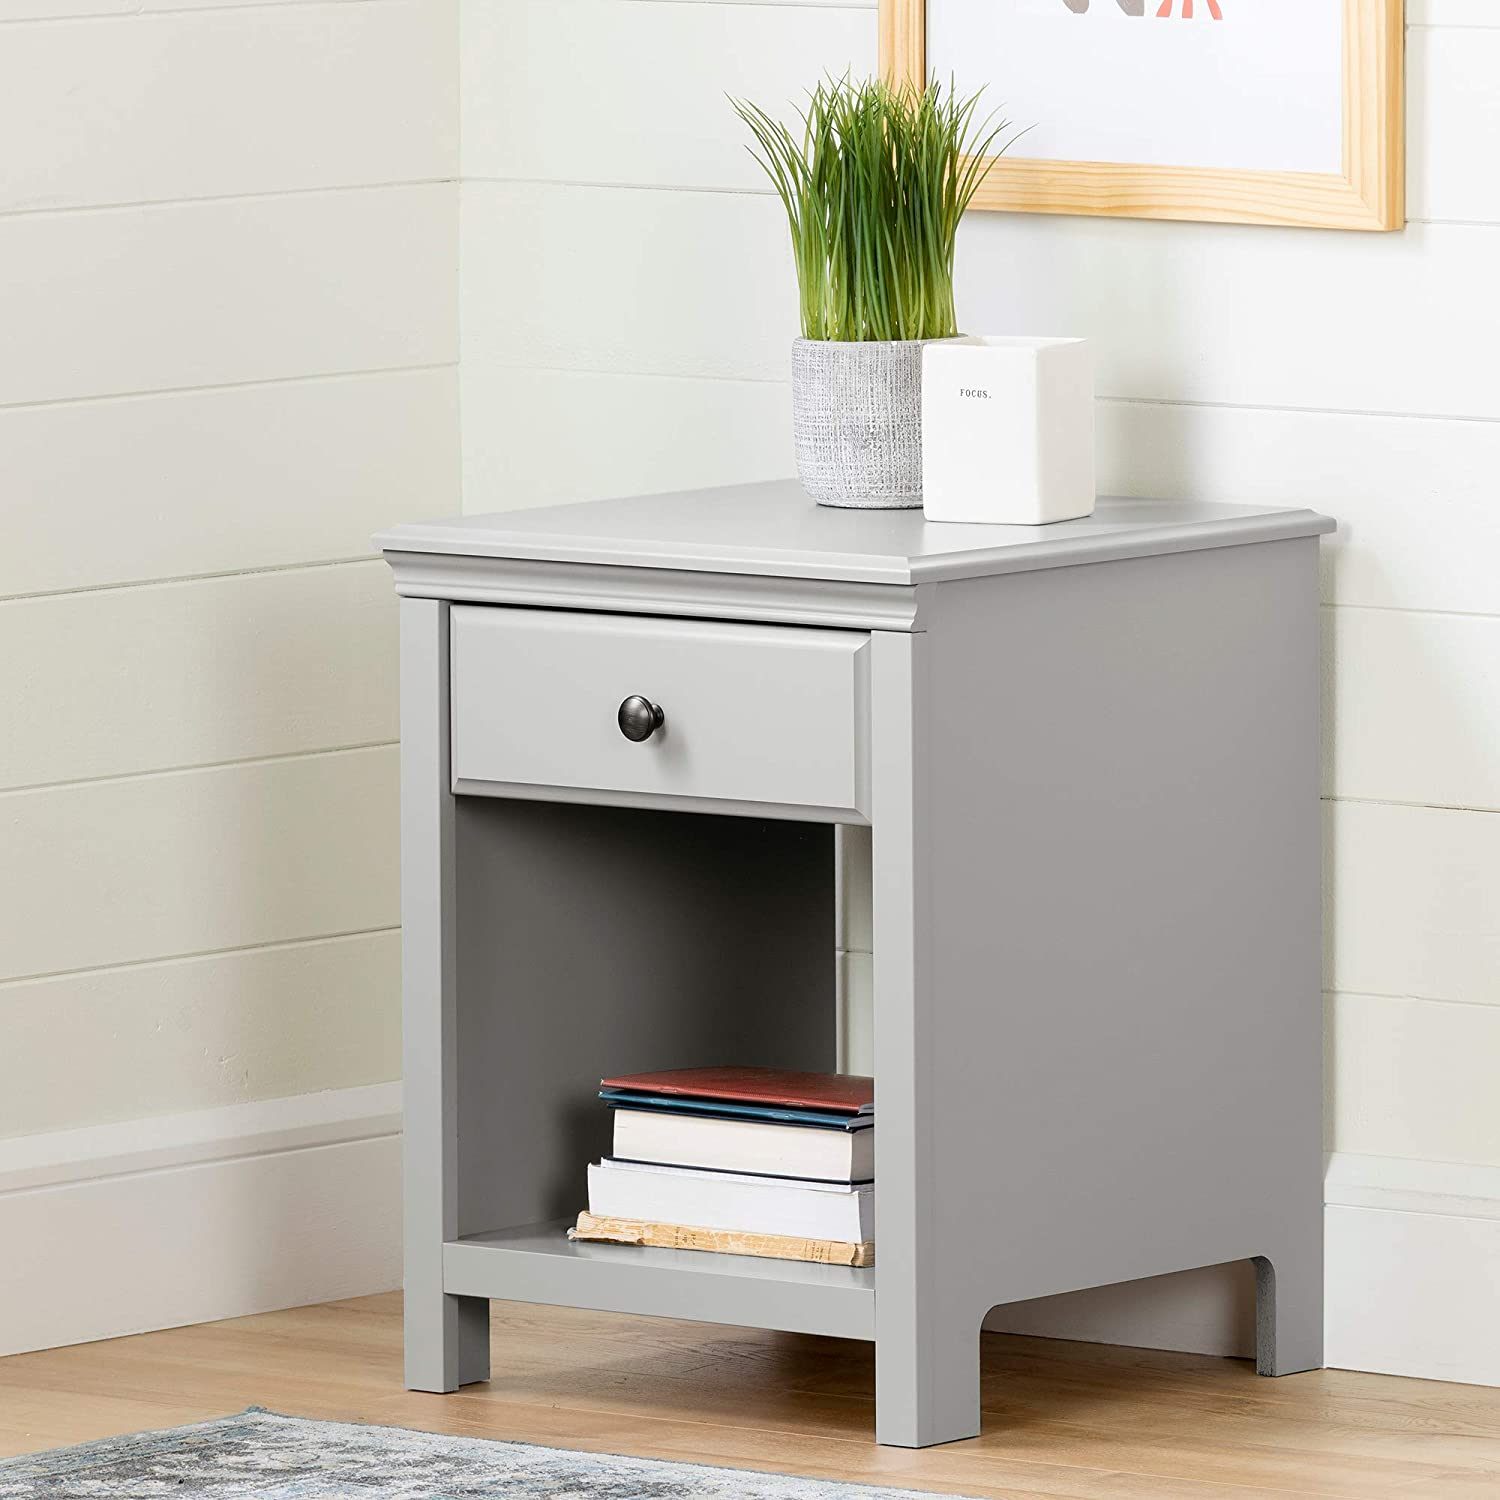 South Shore Cotton Candy 1-Drawer Nightstand, Soft Gray